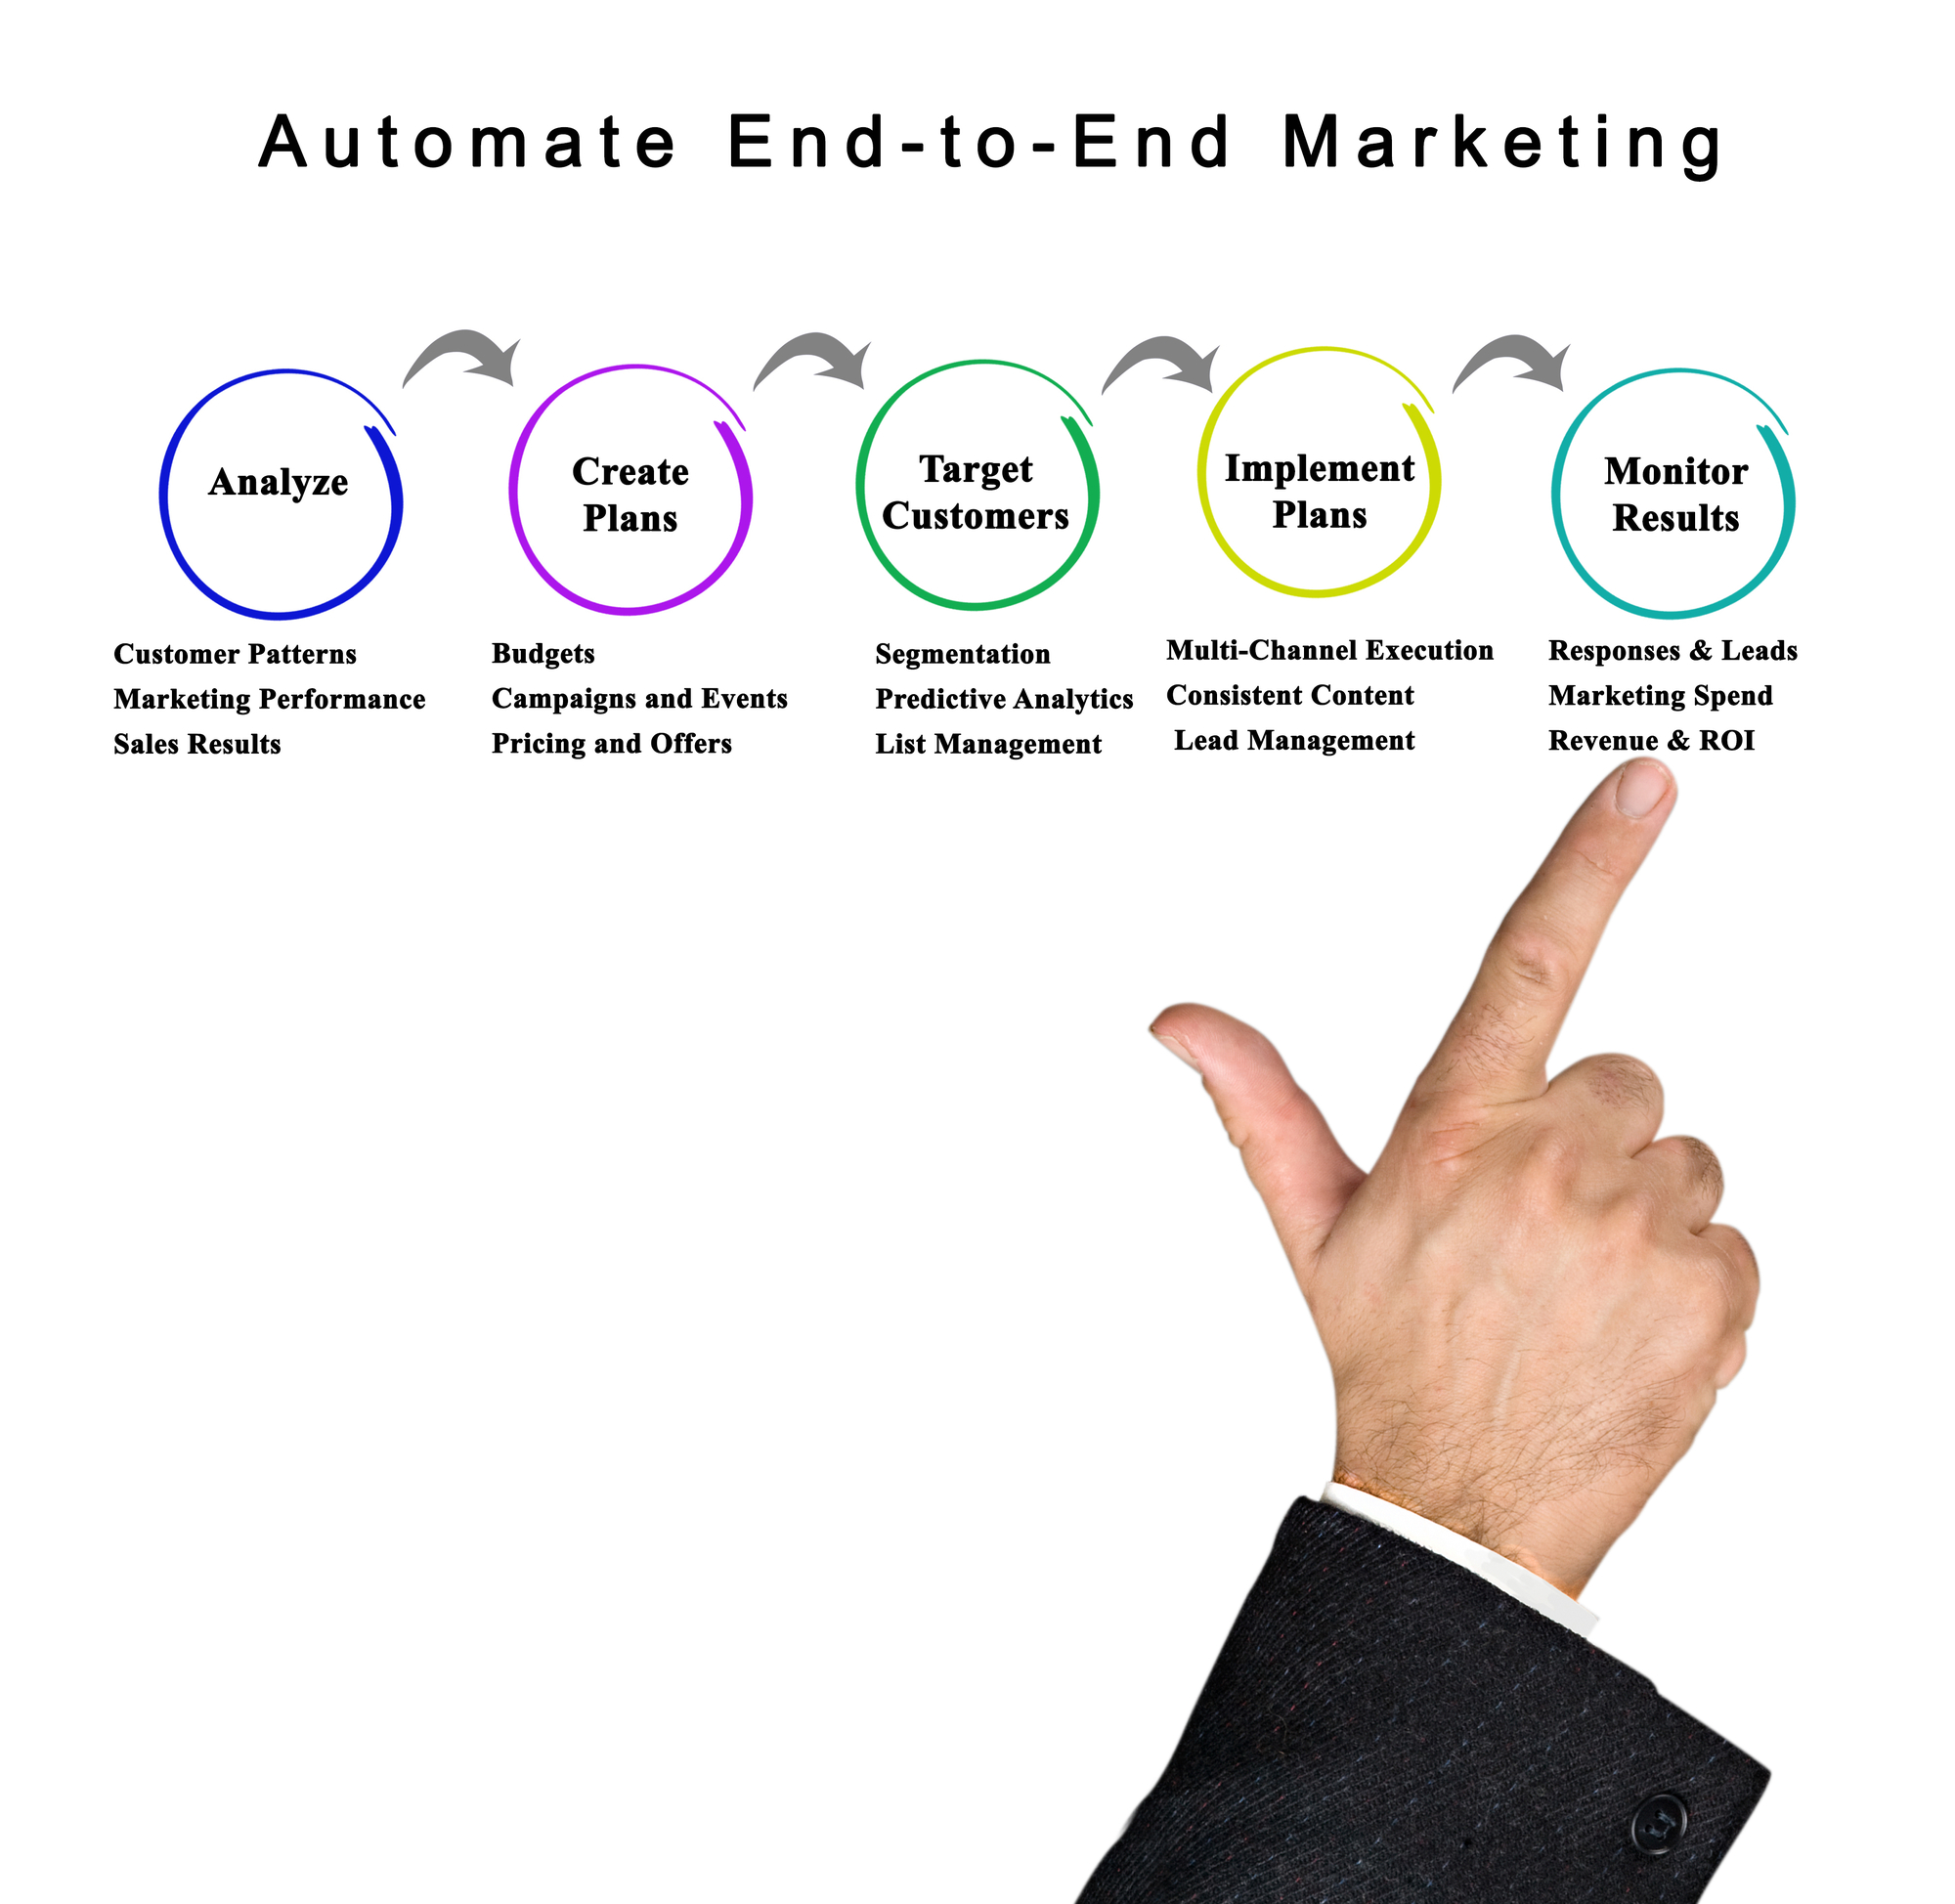 Content and Marketing Automation – A Match Made in Marketing Heaven